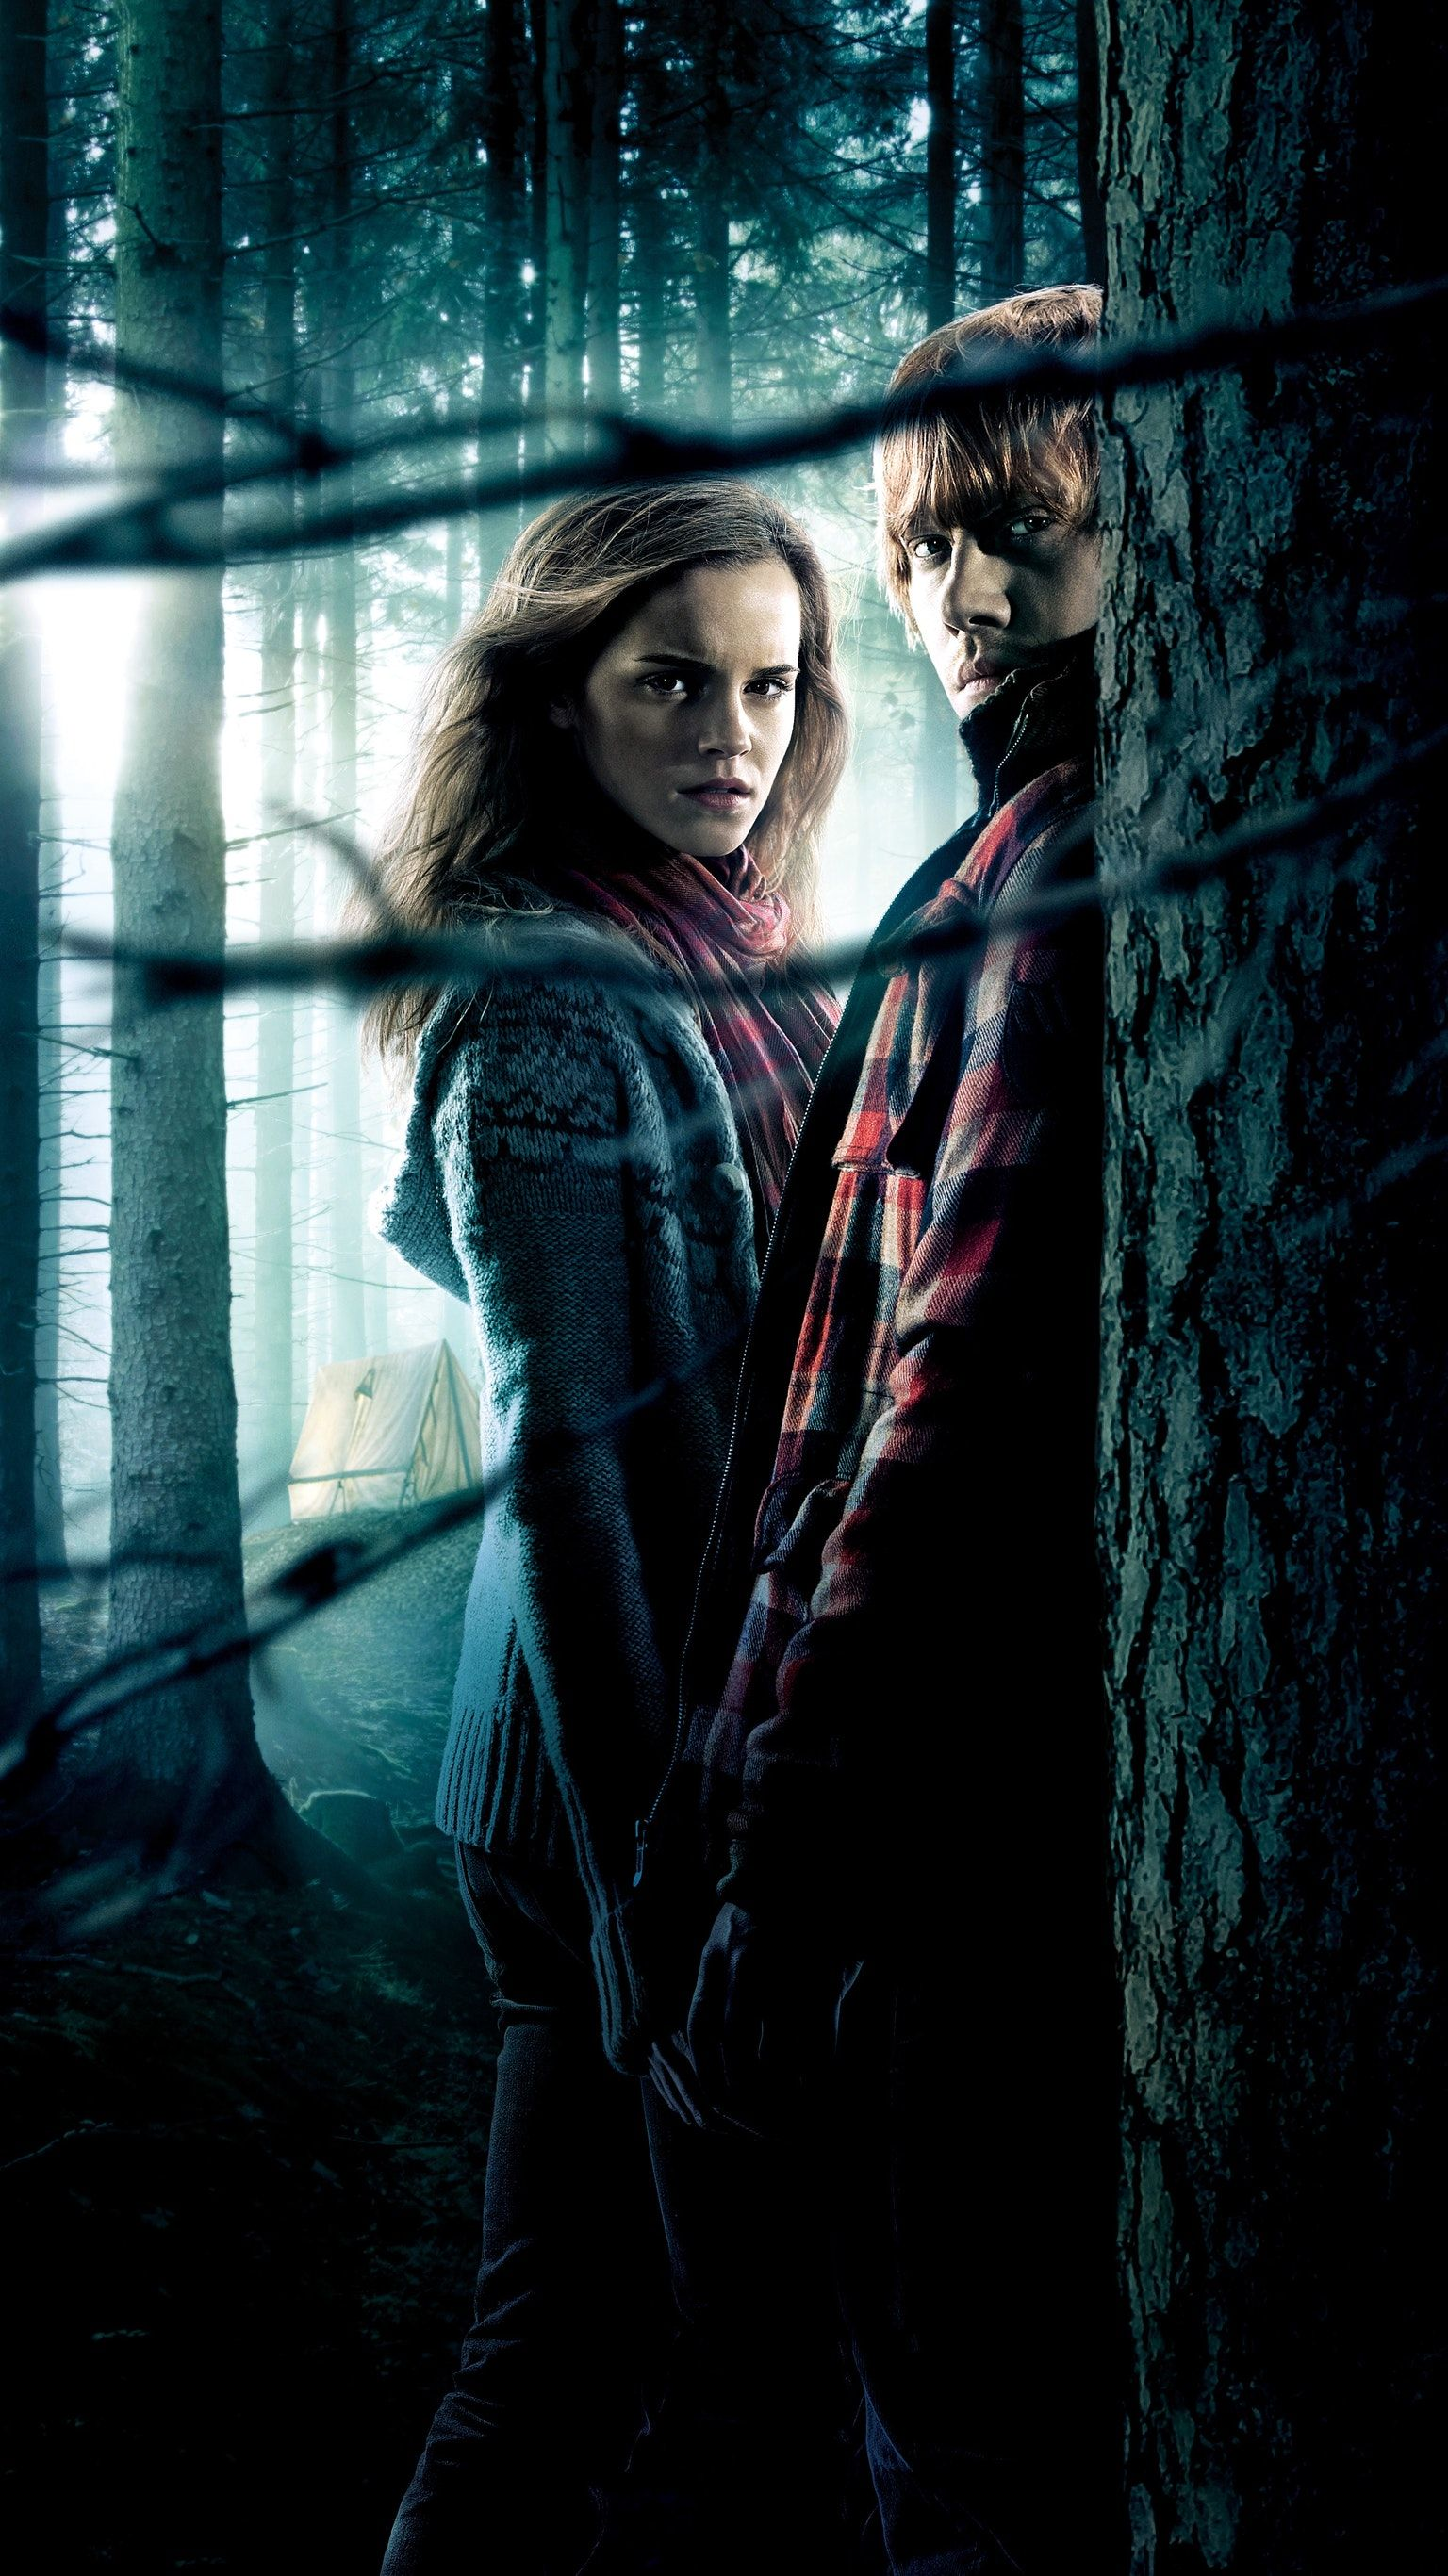 Harry Potter And The Deathly Hallows Part 1 2010 Phone Wallpaper Moviemania First Harry Potter Deathly Hallows Part 1 Harry Potter Universal